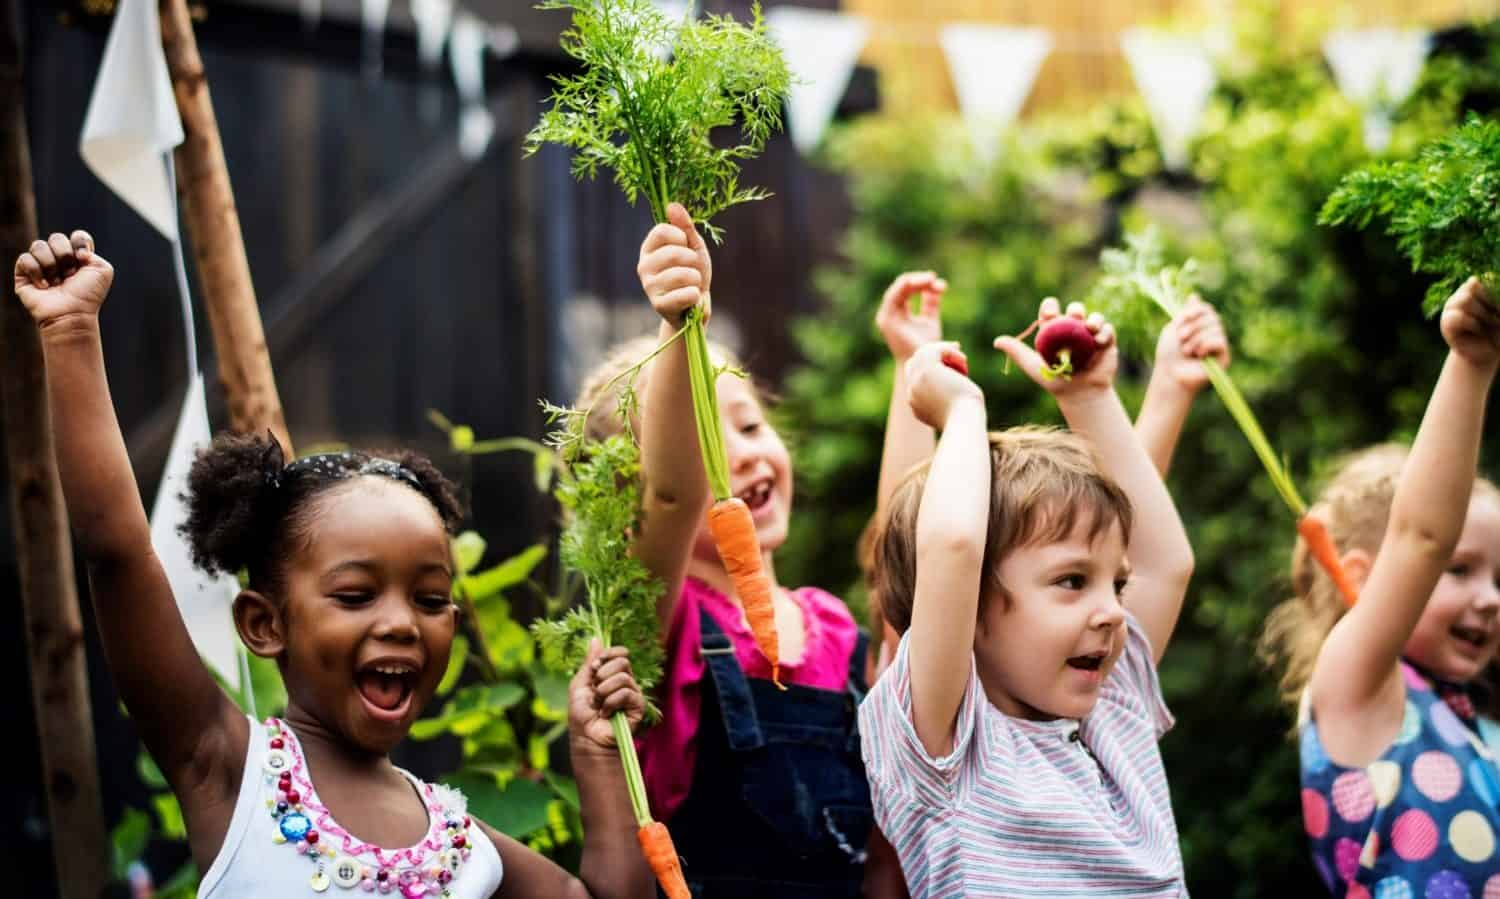 October is national Farm-to-School Month, and Food Tank is spotlighting 19 of the world's most innovative farm-to-school programs making an impact.